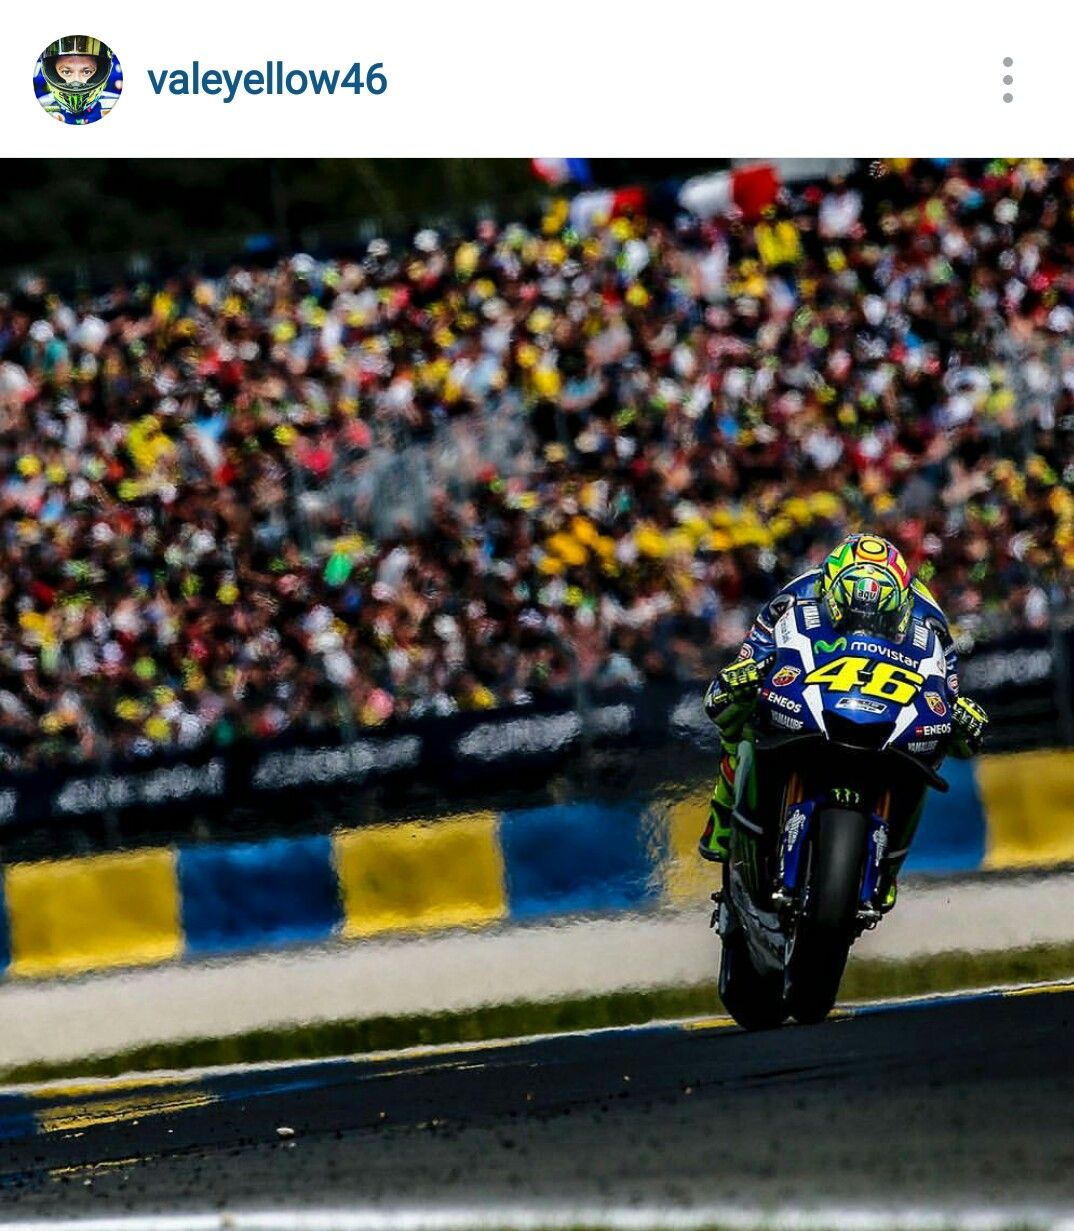 Rossi Takes 2nd At Le Mans 2016 Valeyellow46 On Instagram